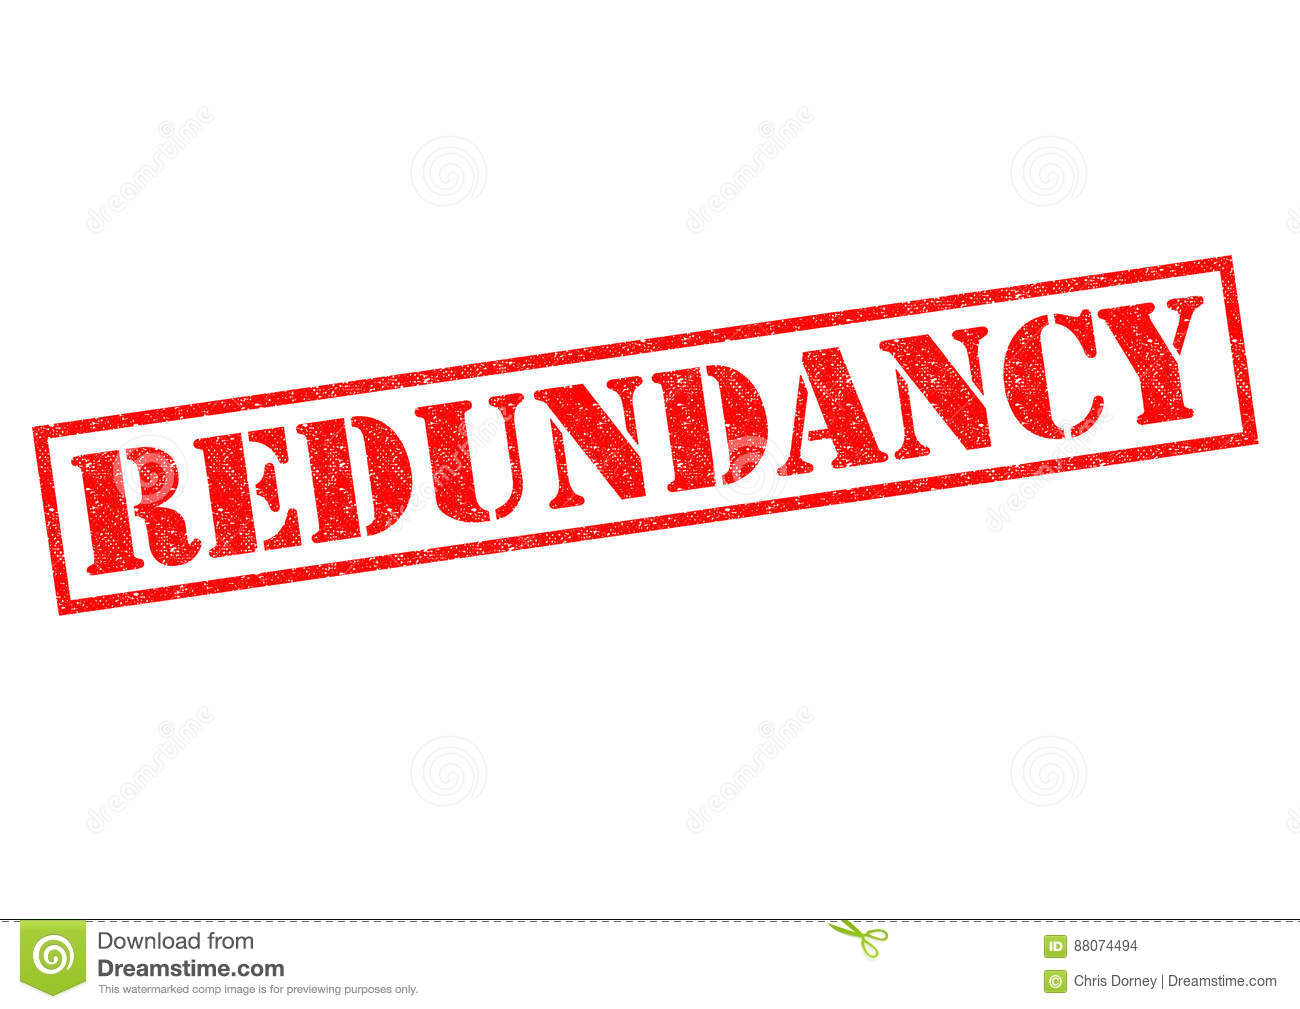 redundancy-red-rubber-stamp-over-white-background-88074494.jpg?profile=RESIZE_400x